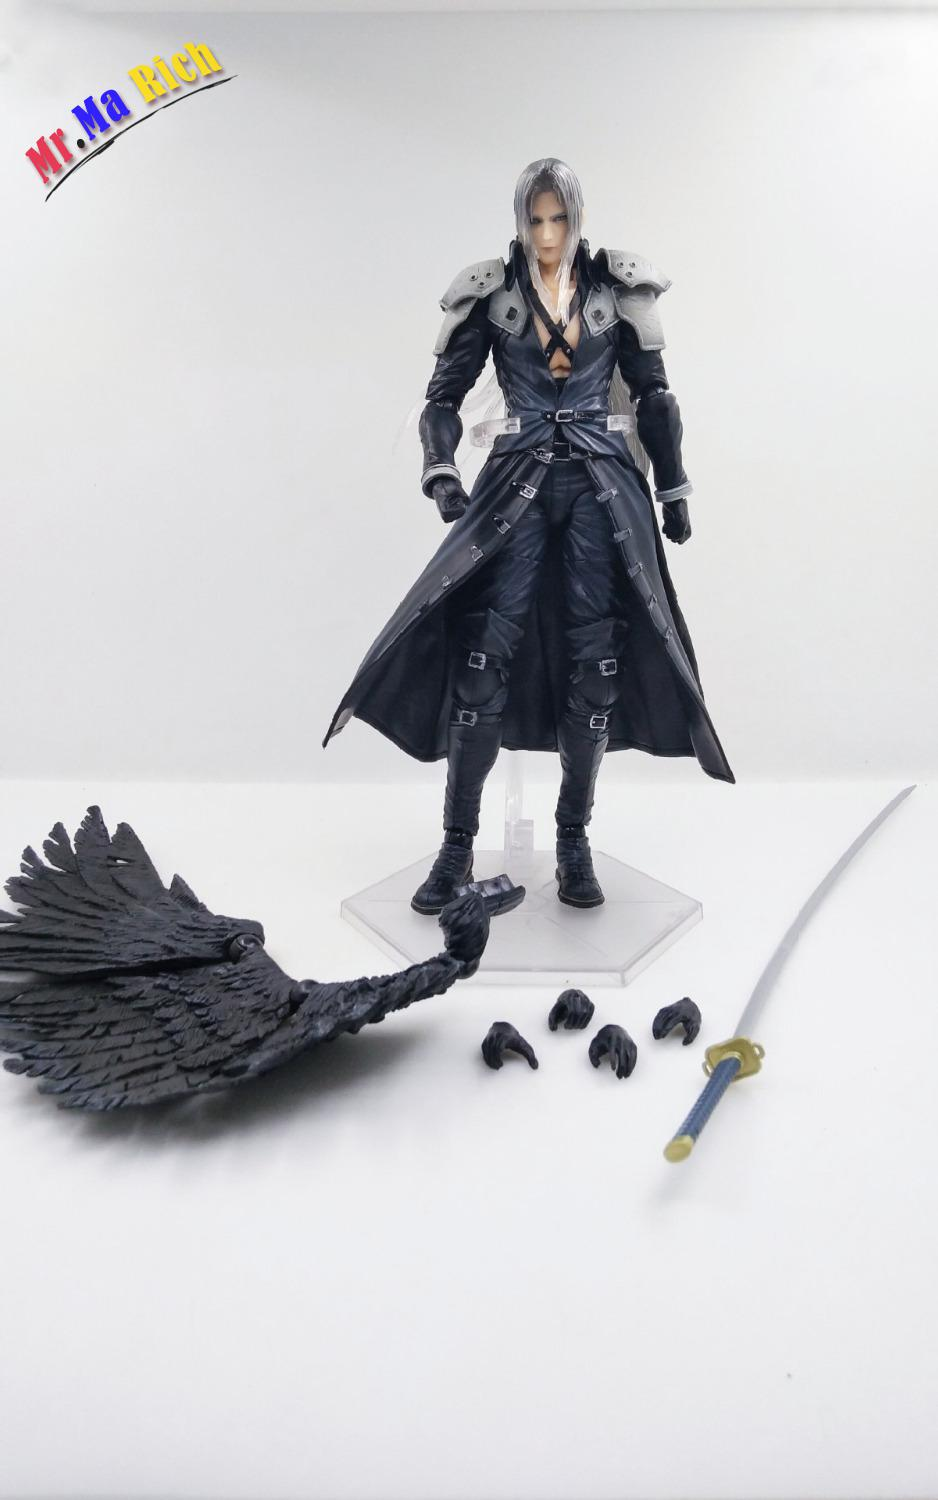 Anime Figure 25cm Final Fantasy Vii 7 Sephiroth Pvc Action Figure Collectible Model Toys Doll anime figure alphamax shining blade allina pvc action figure collectible model toys doll 24cm